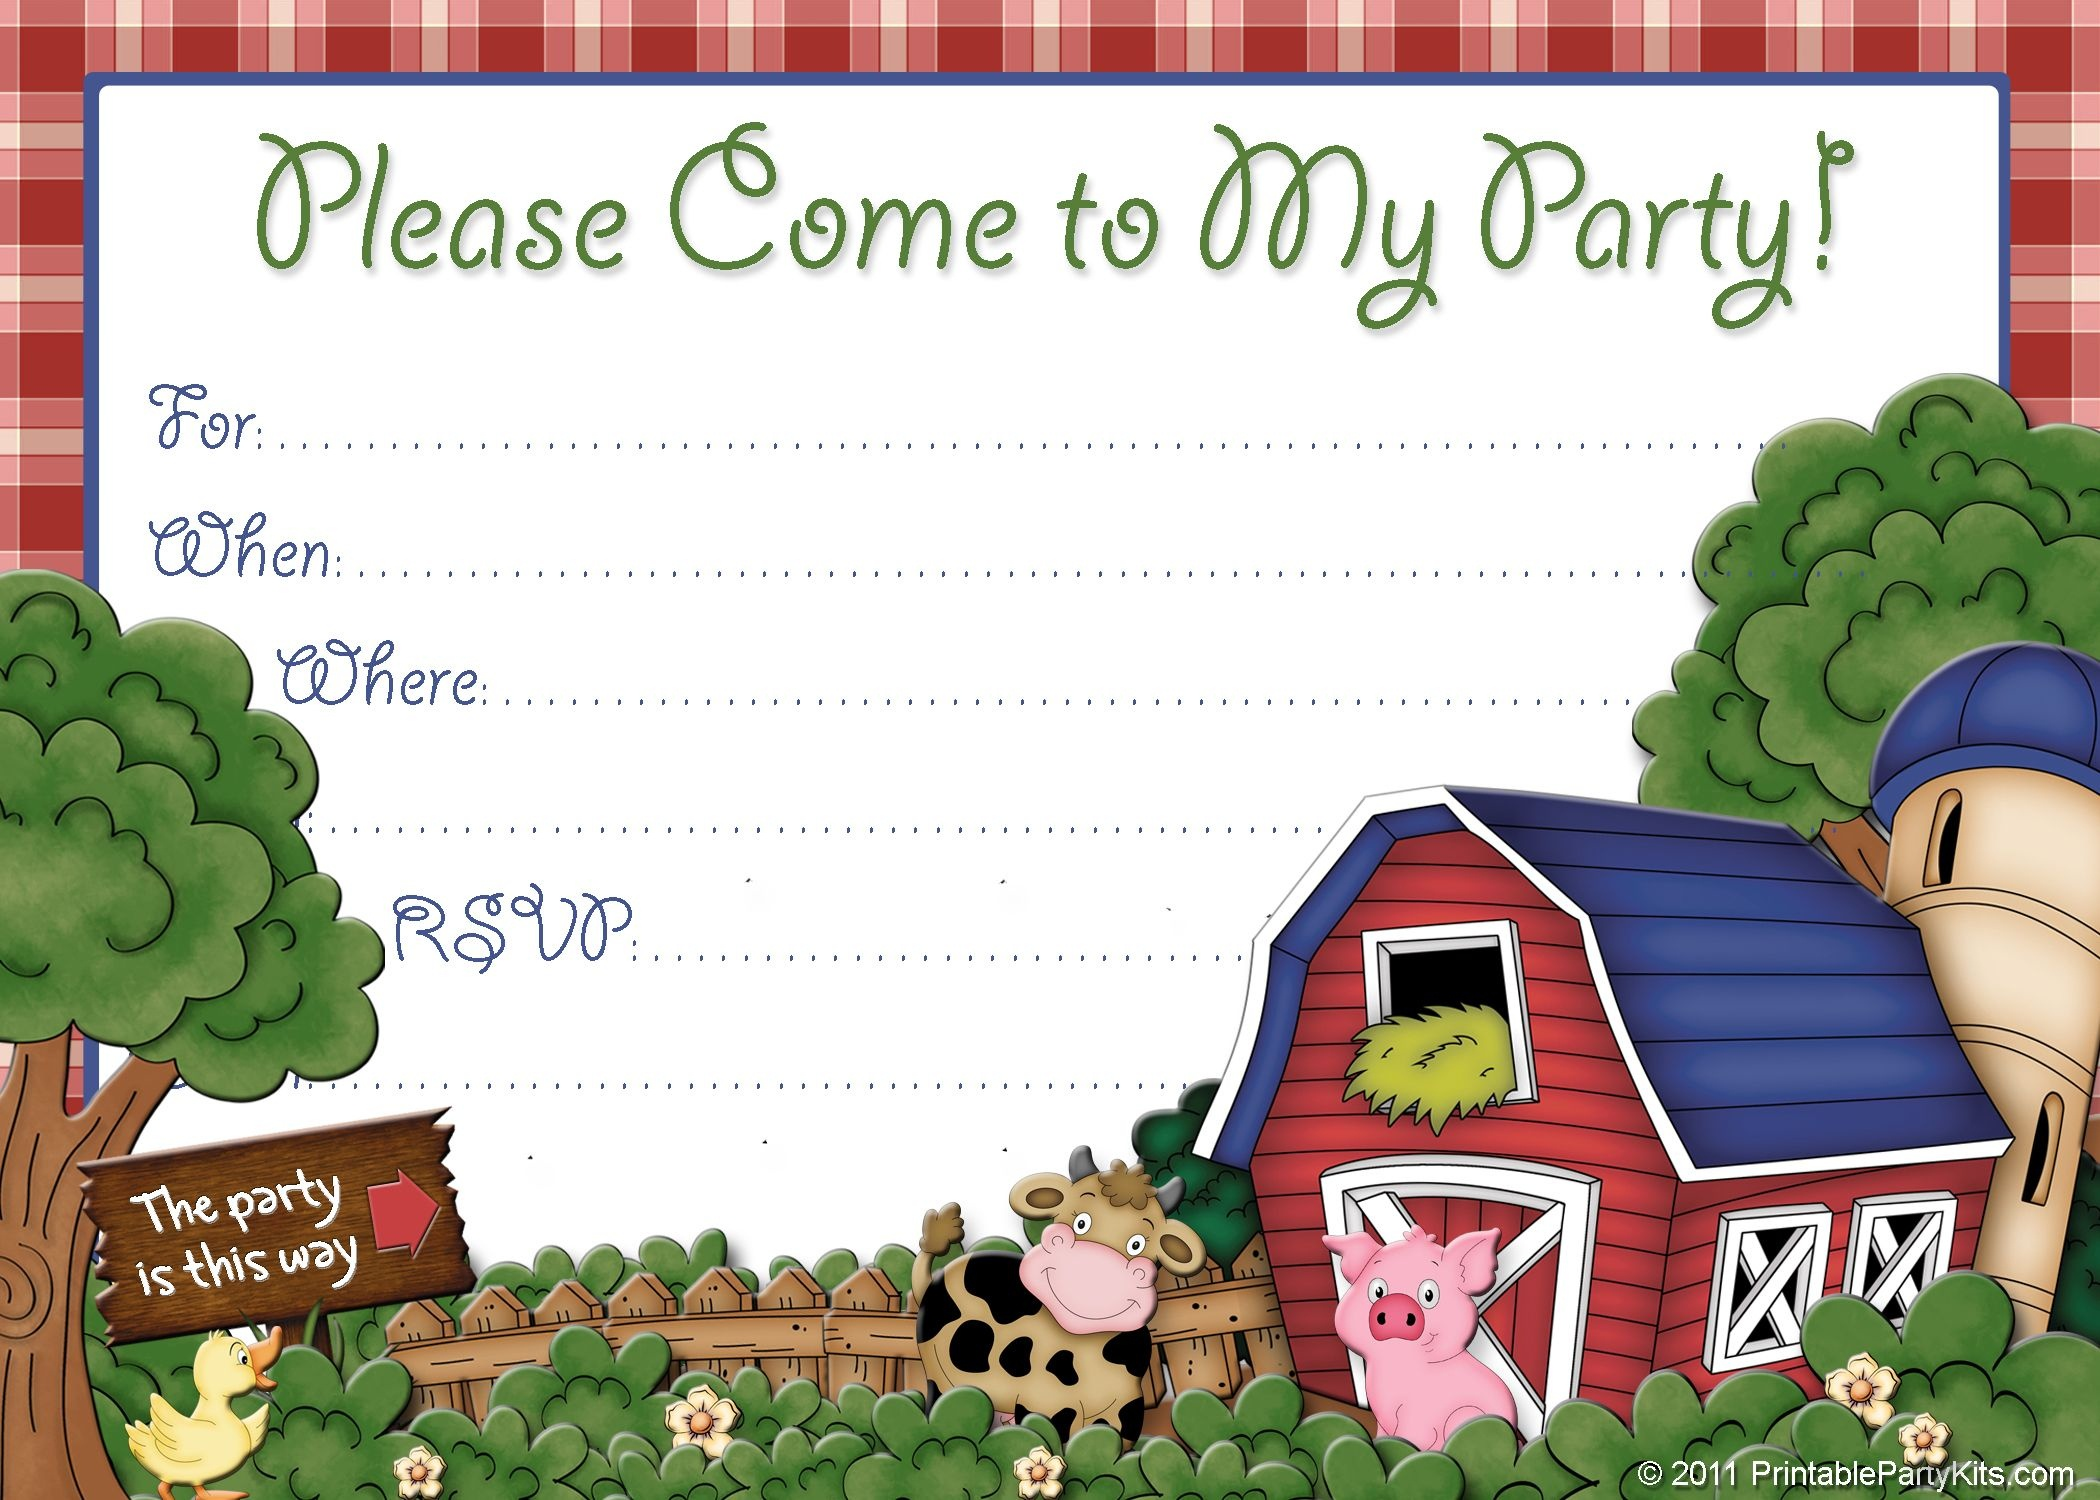 Free Printable Boys Birthday Party Invitations | Invitation Cards - Free Printable Farm Birthday Invitations